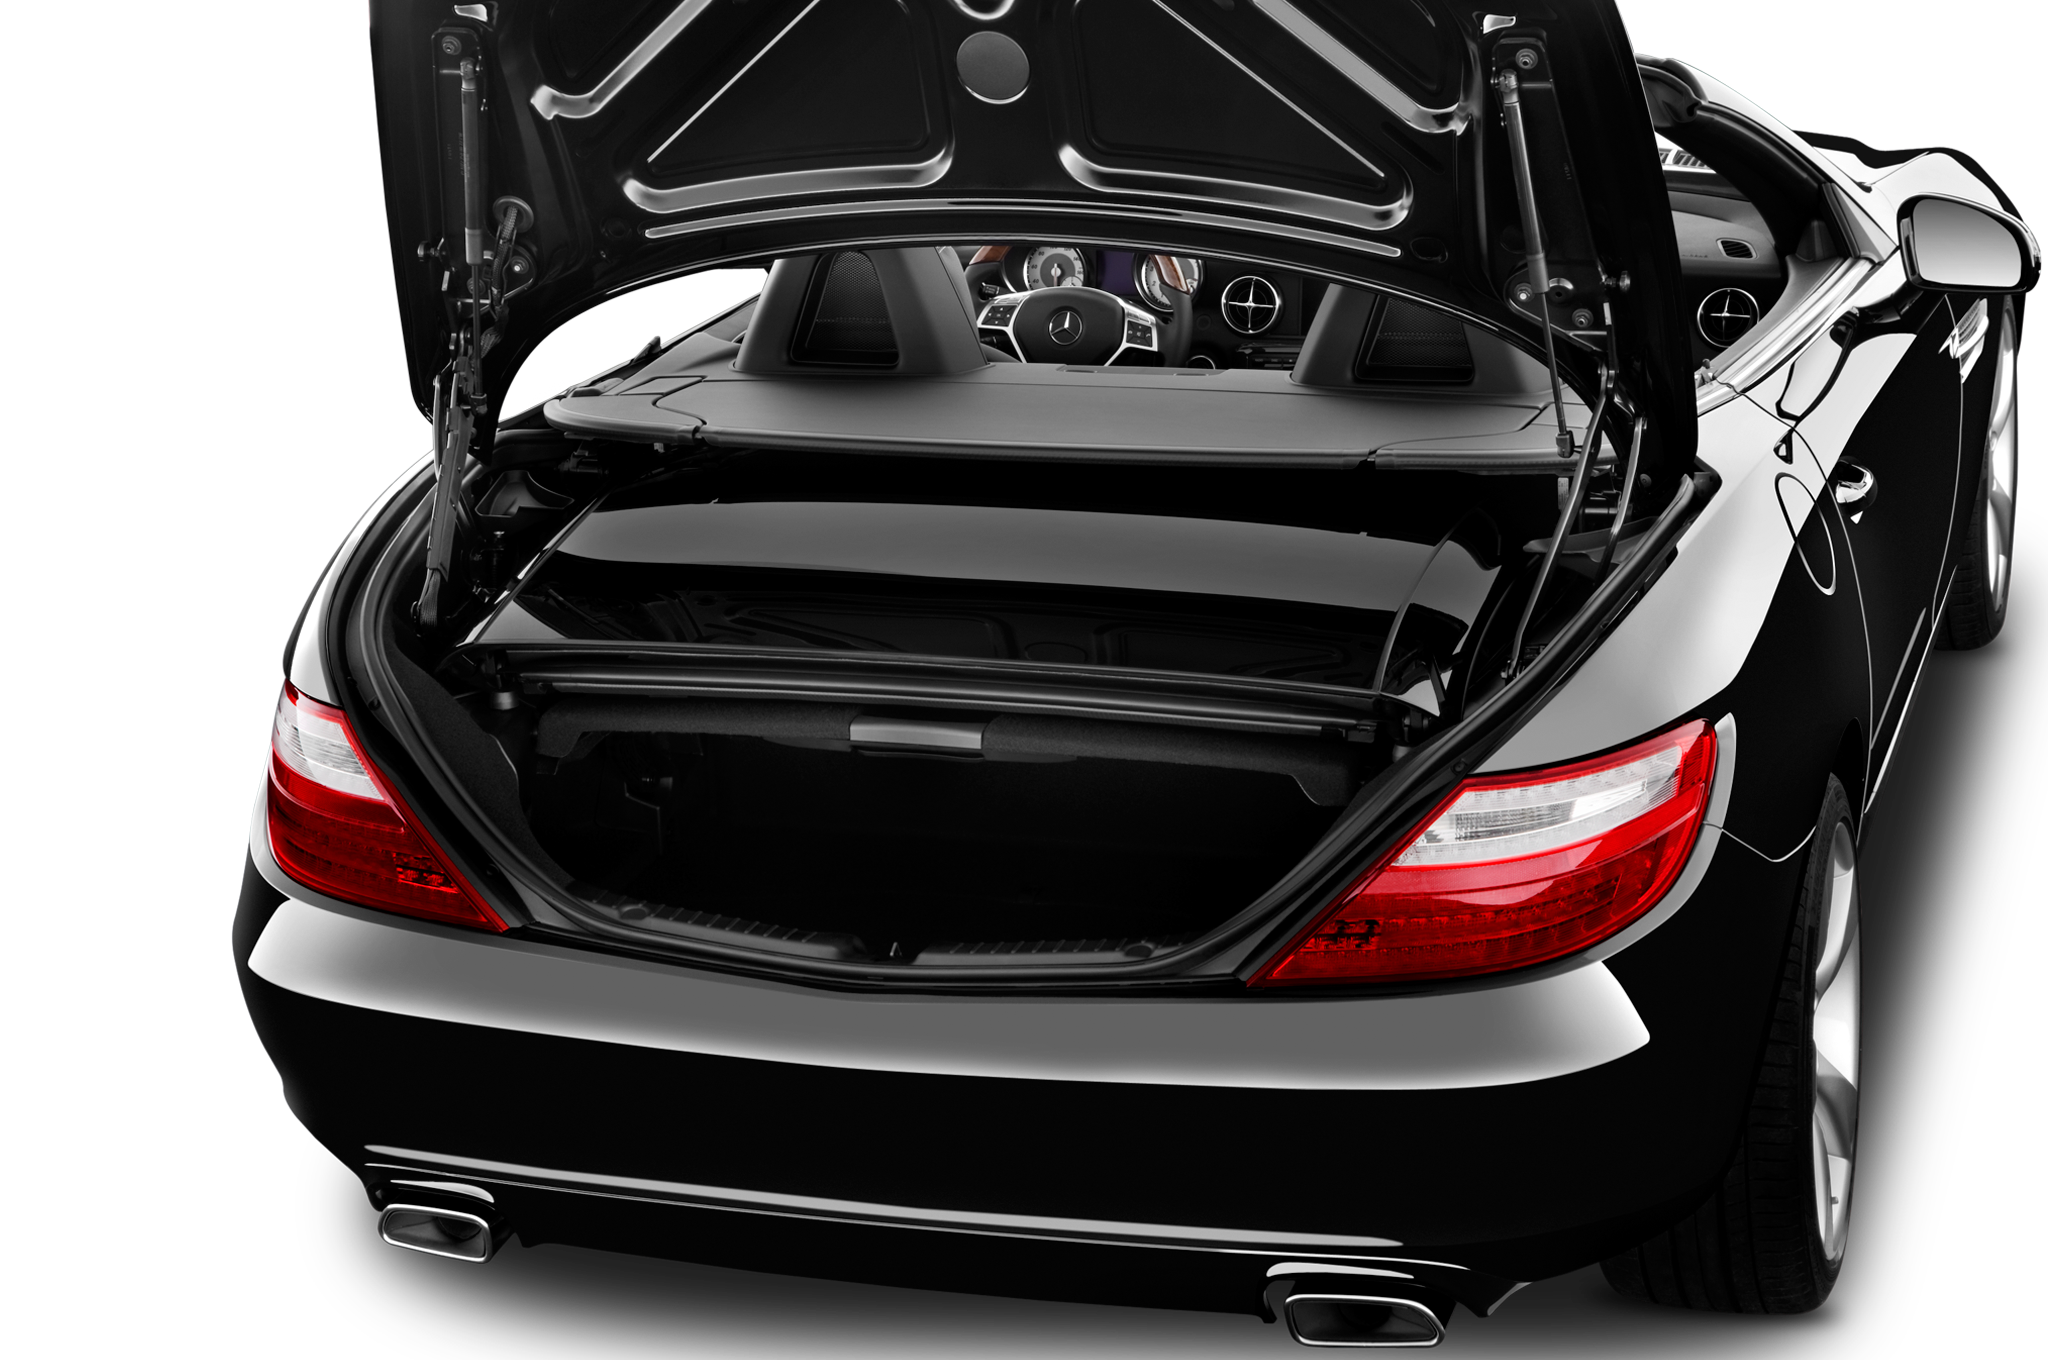 2012 Mercedes-Benz SLK250 - Editors' Notebook - Automobile ...